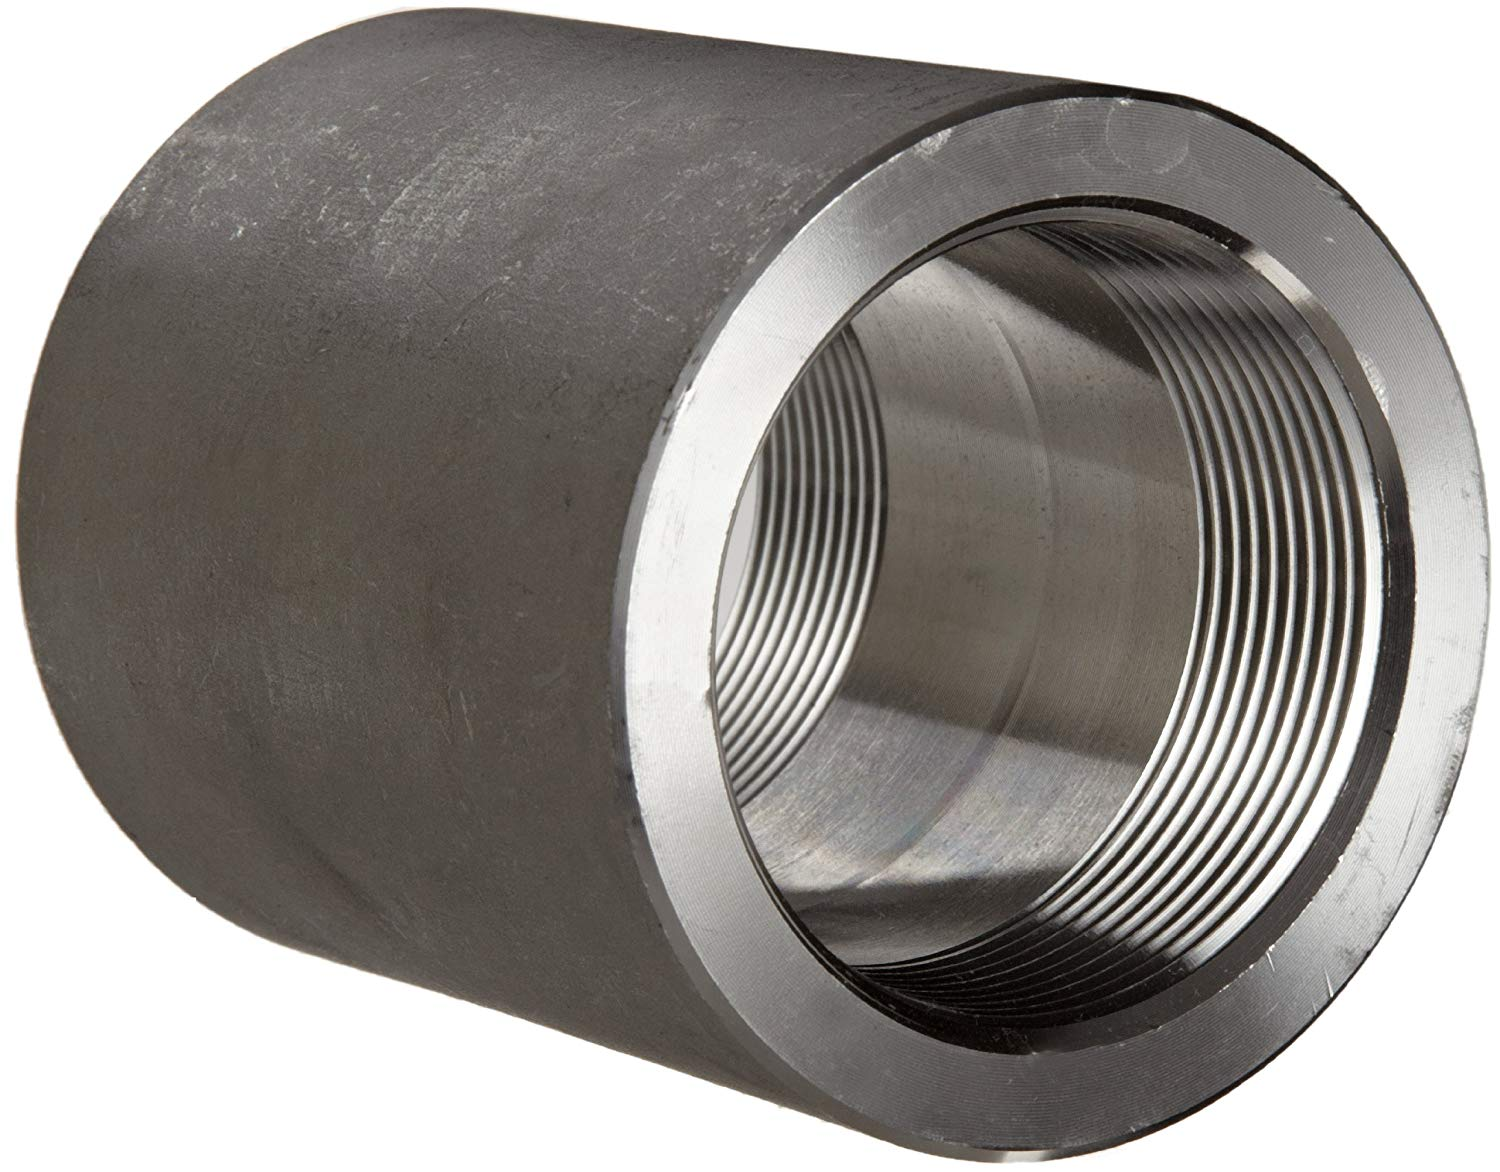 coupling-manufacturers-suppliers-exporters-stockist